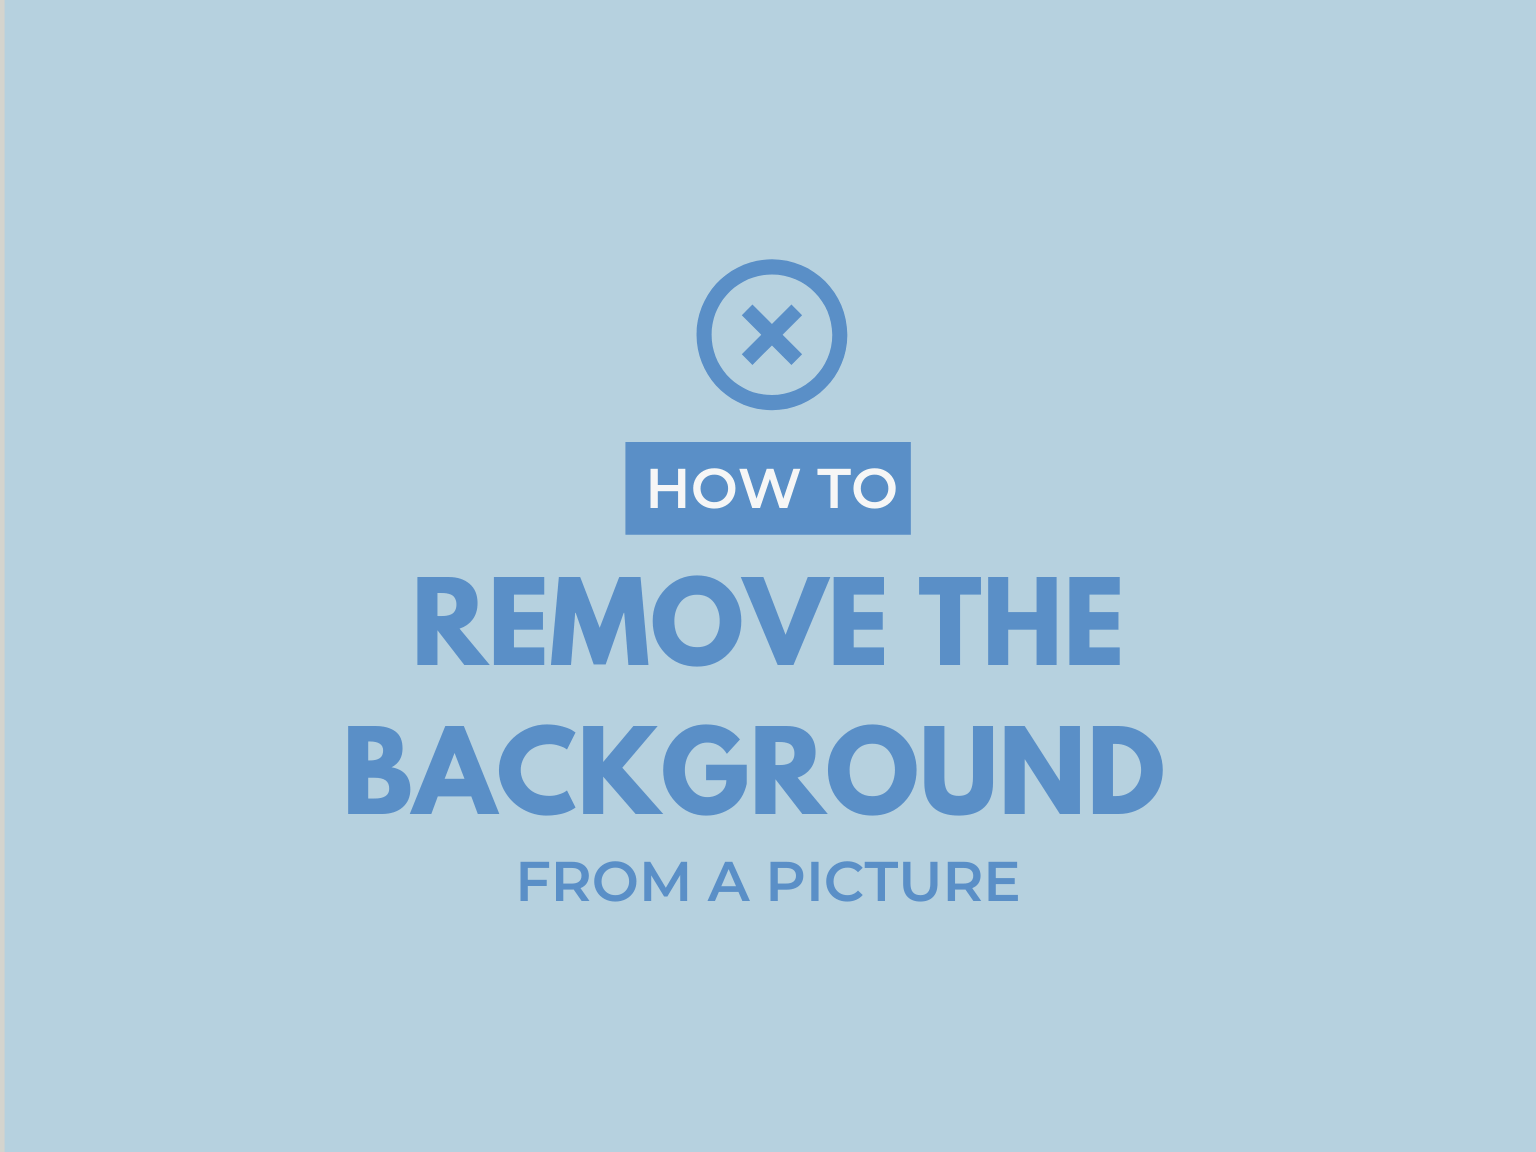 remove the background from an image